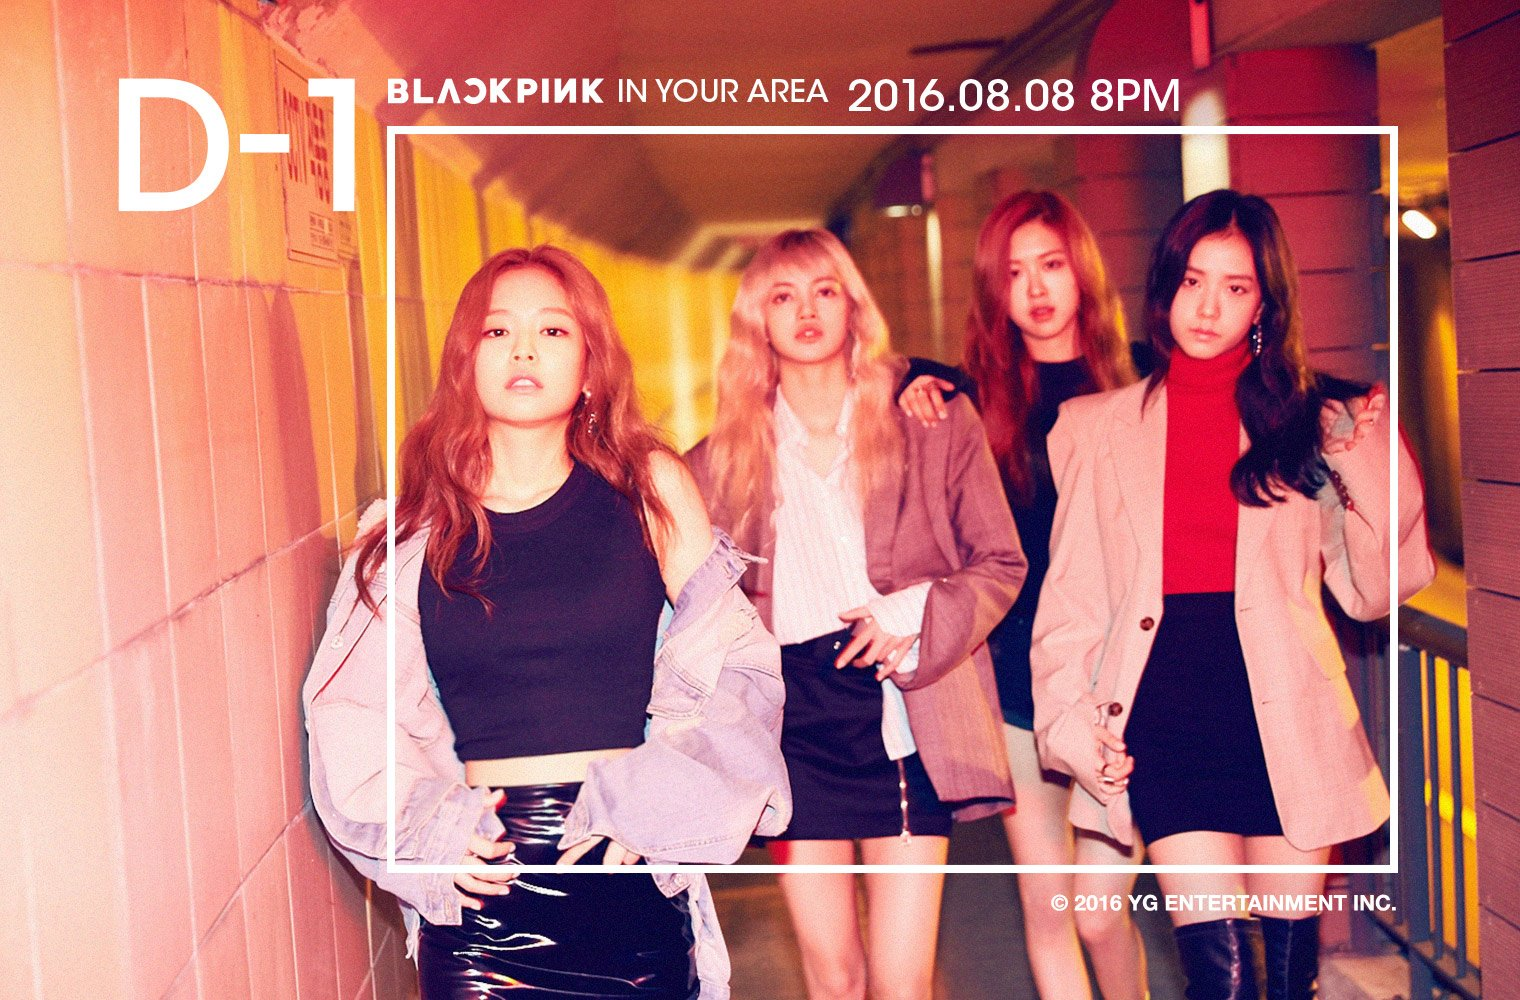 1 Day Left Until BLACKPINK's Debut; New Group Teaser Released